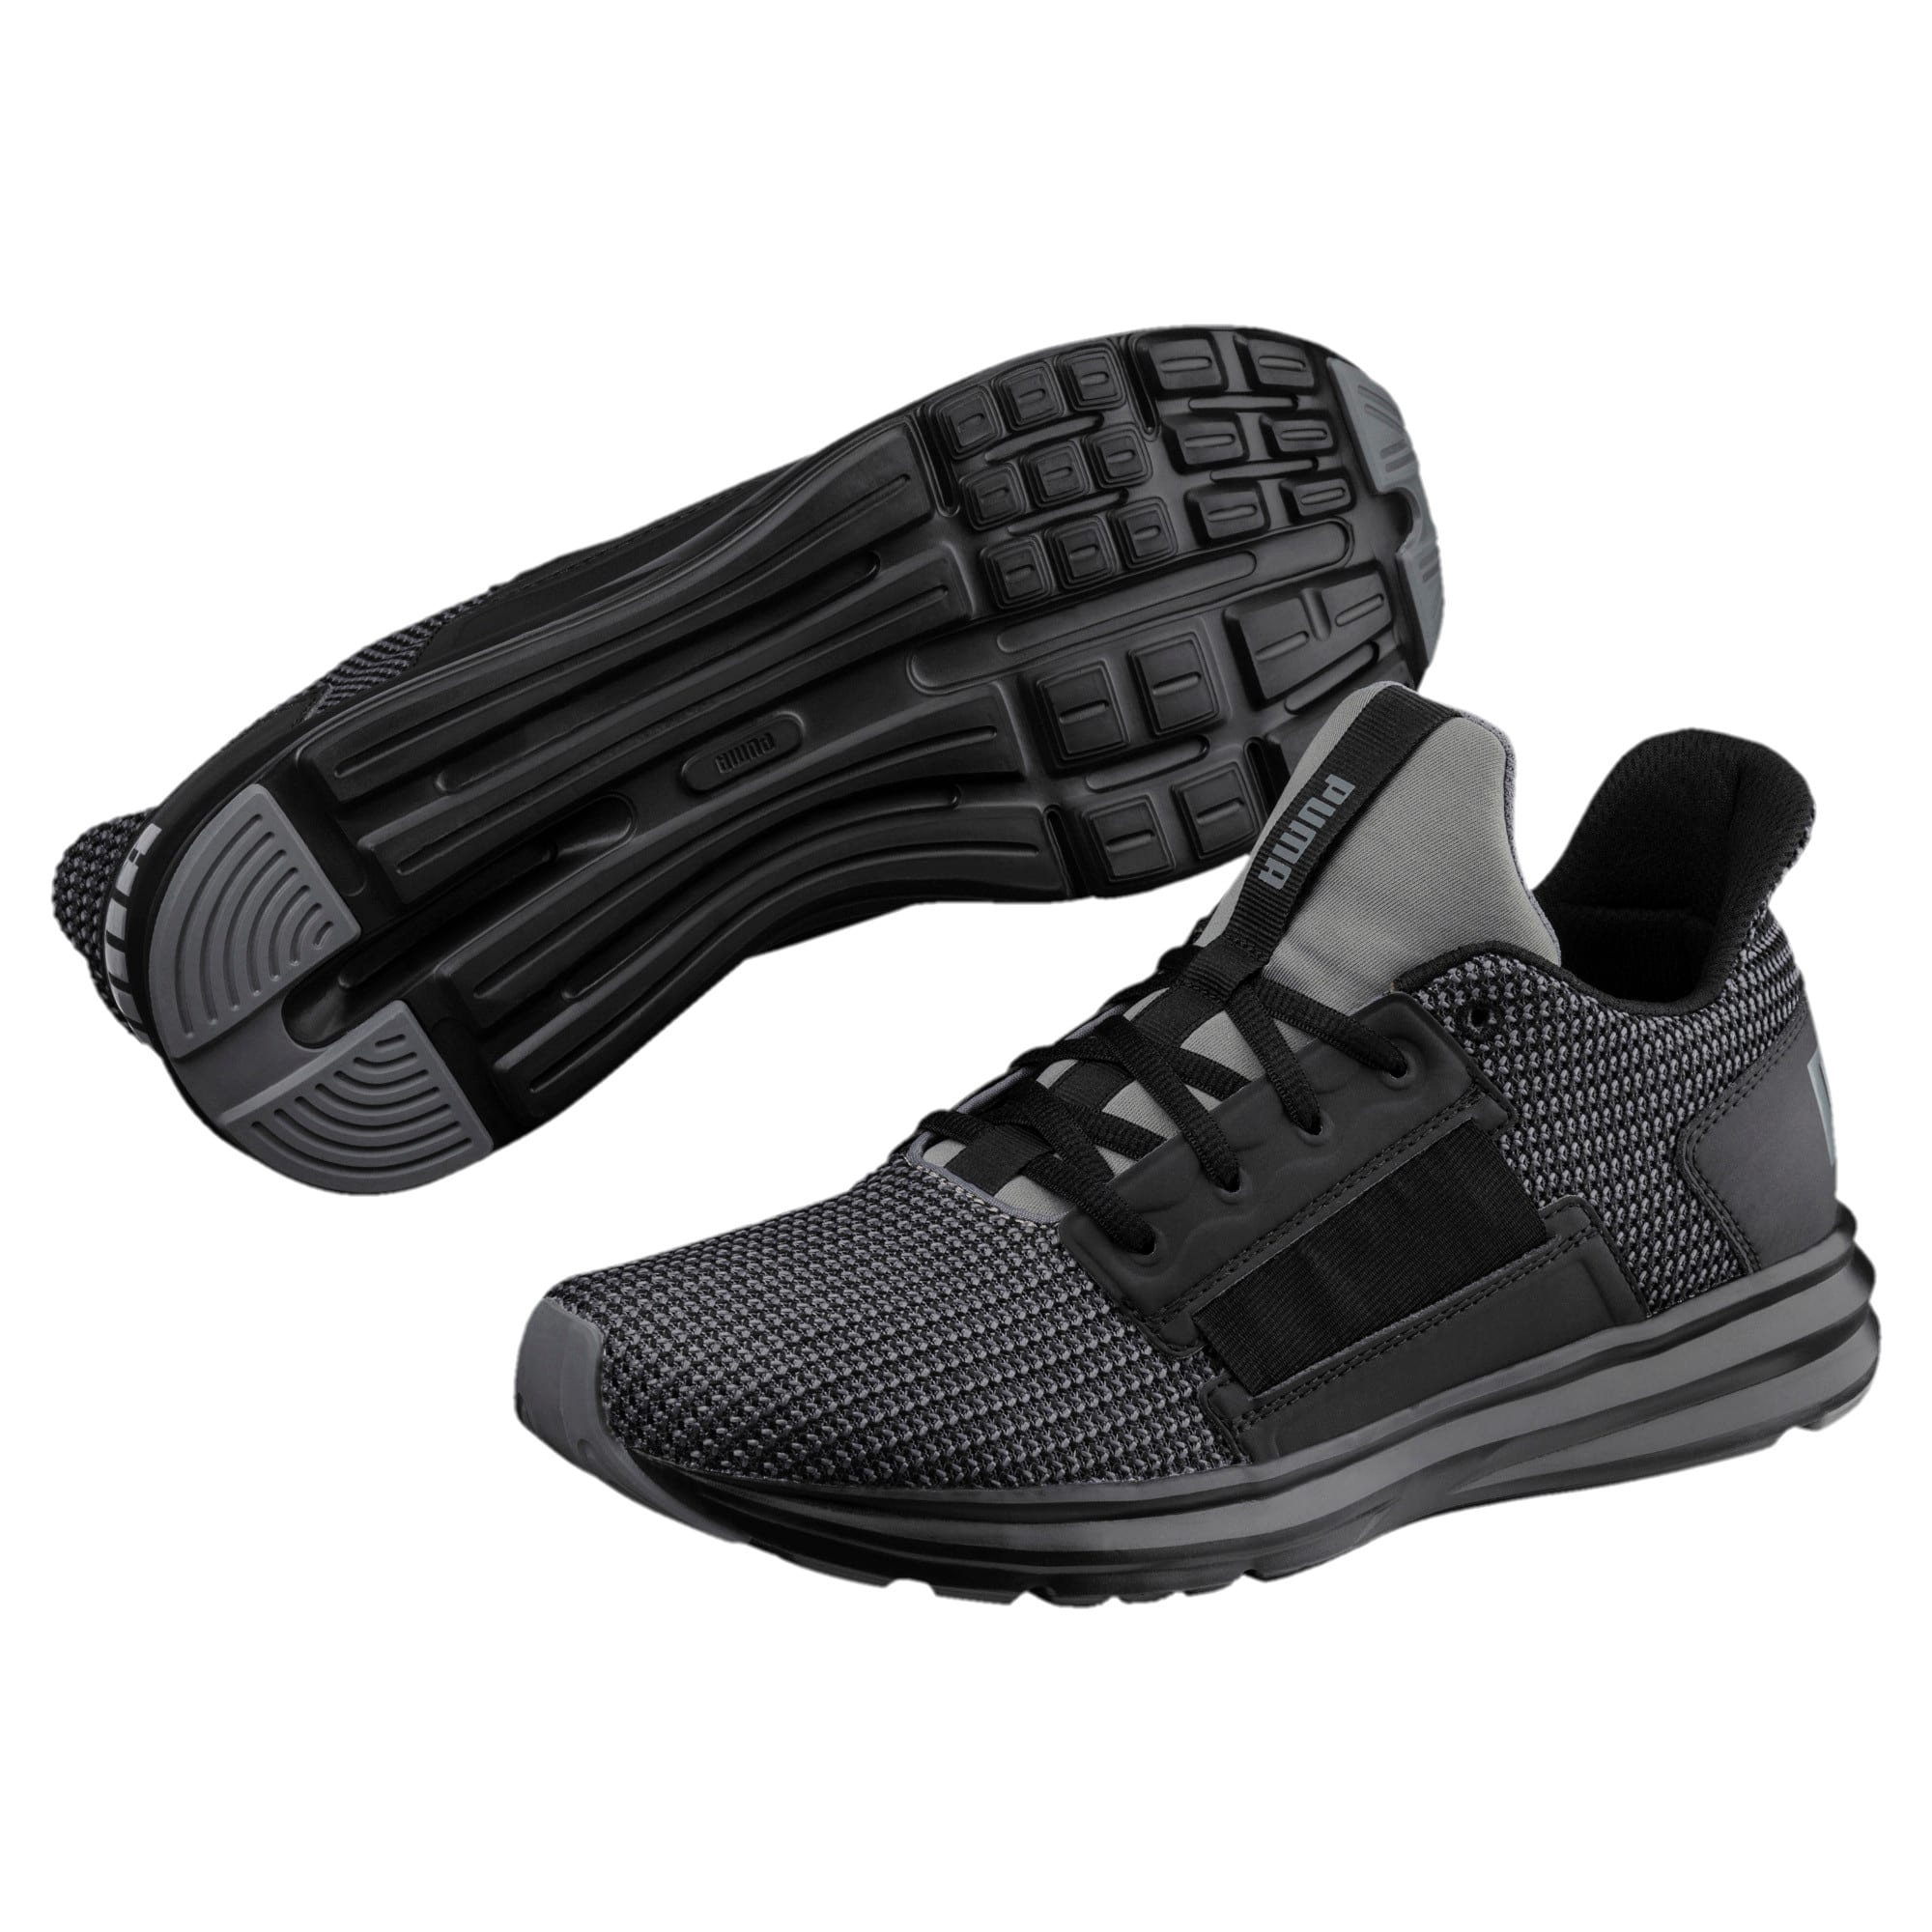 Thumbnail 2 of Enzo Street Knit Men's Running Shoes, QUIET SHADE-Puma Black, medium